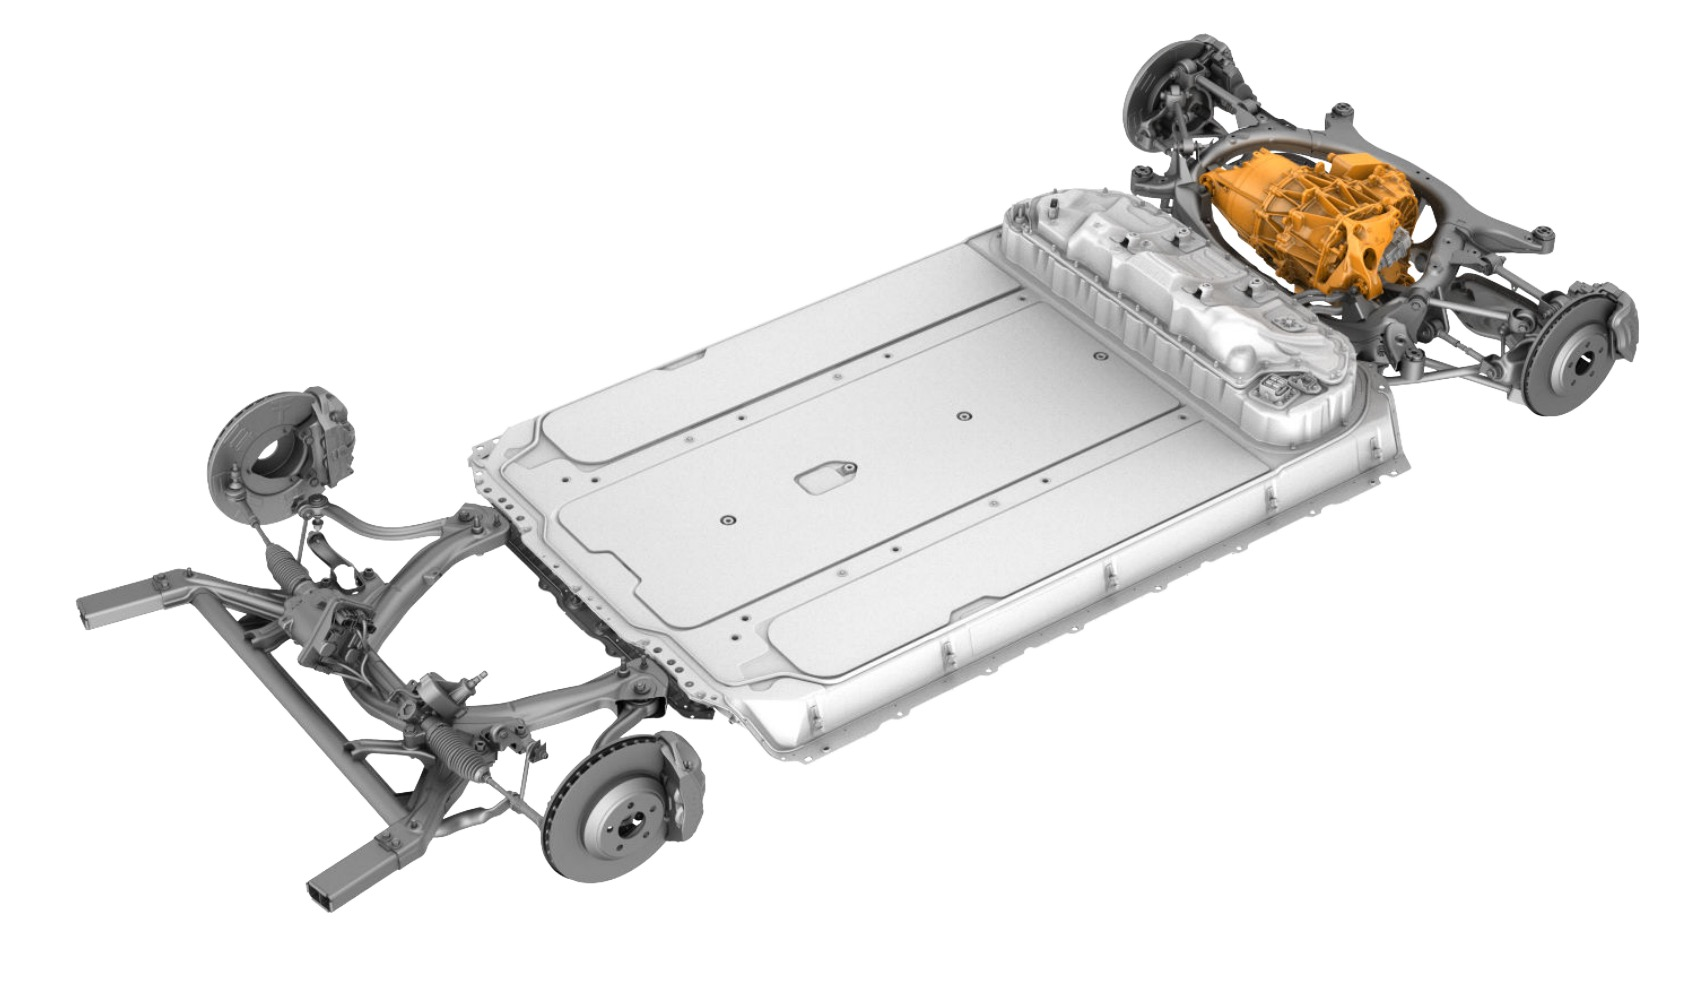 Tesla Model 3 Interesting Look At Powertrain And Chassis Through First Responders Guide Electrek